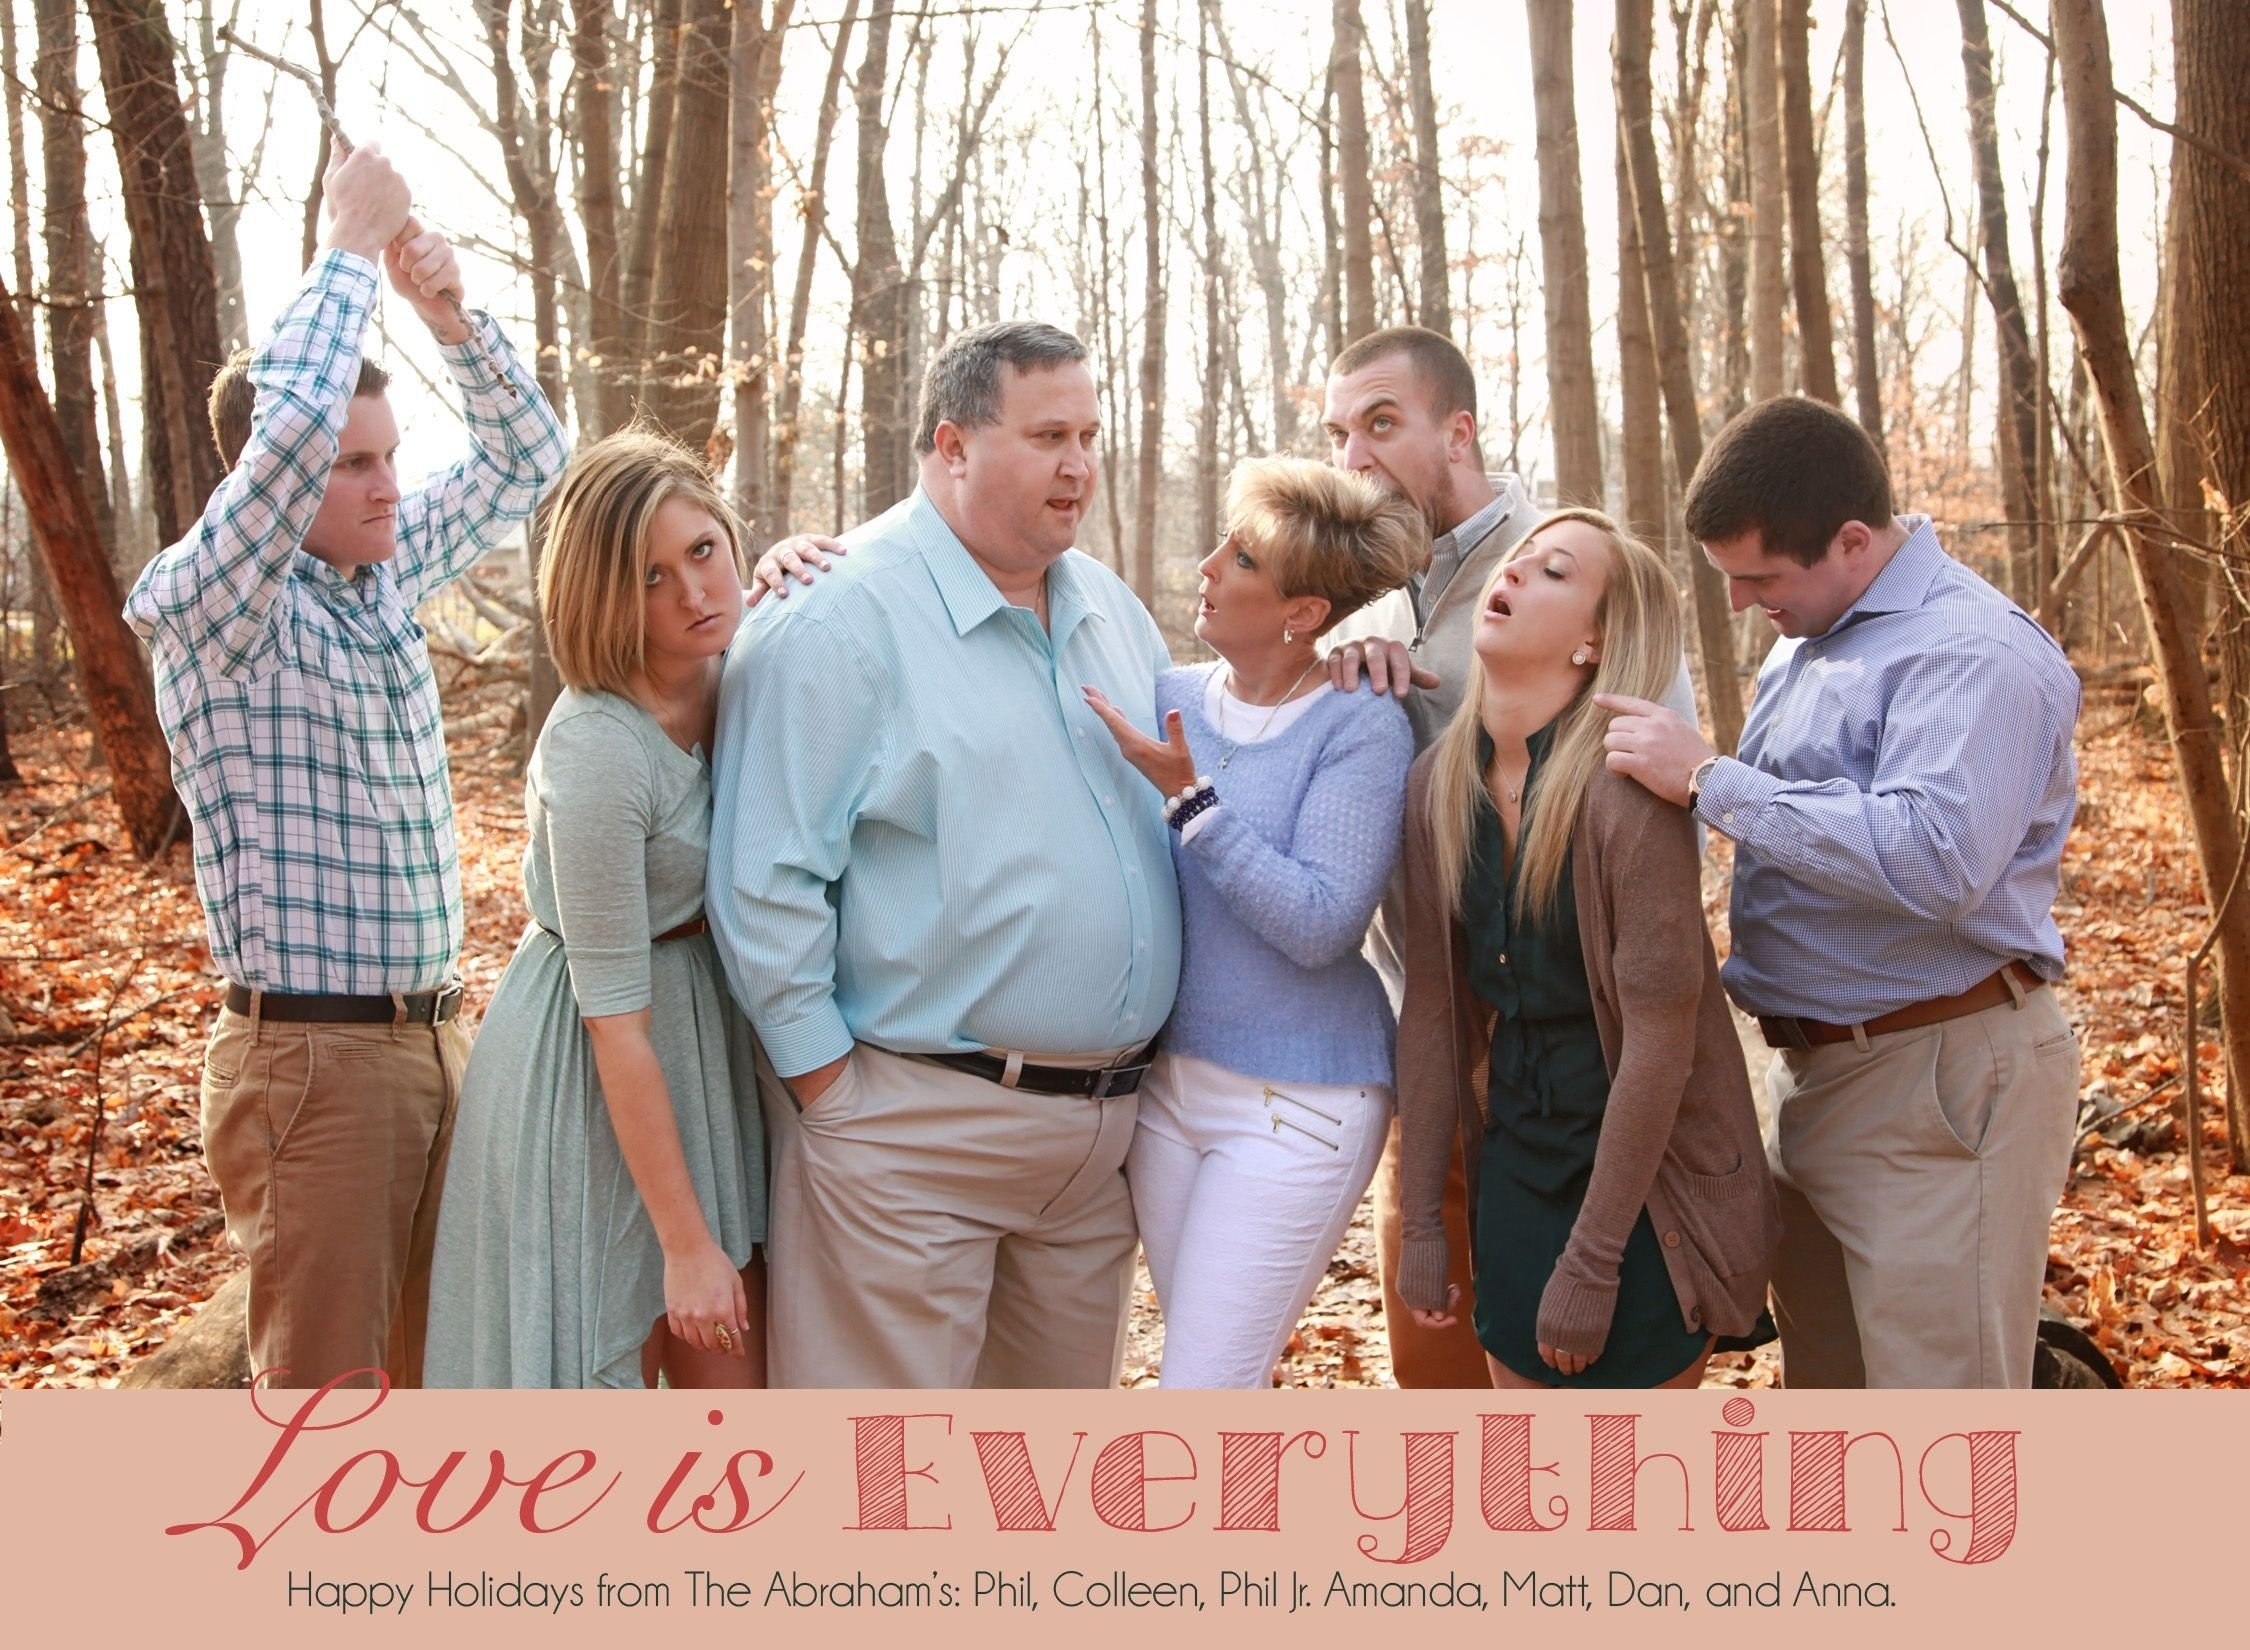 10 Fashionable Cute Christmas Card Photo Ideas 15 funny christmas cards youll wish your family thought of first 1 2020